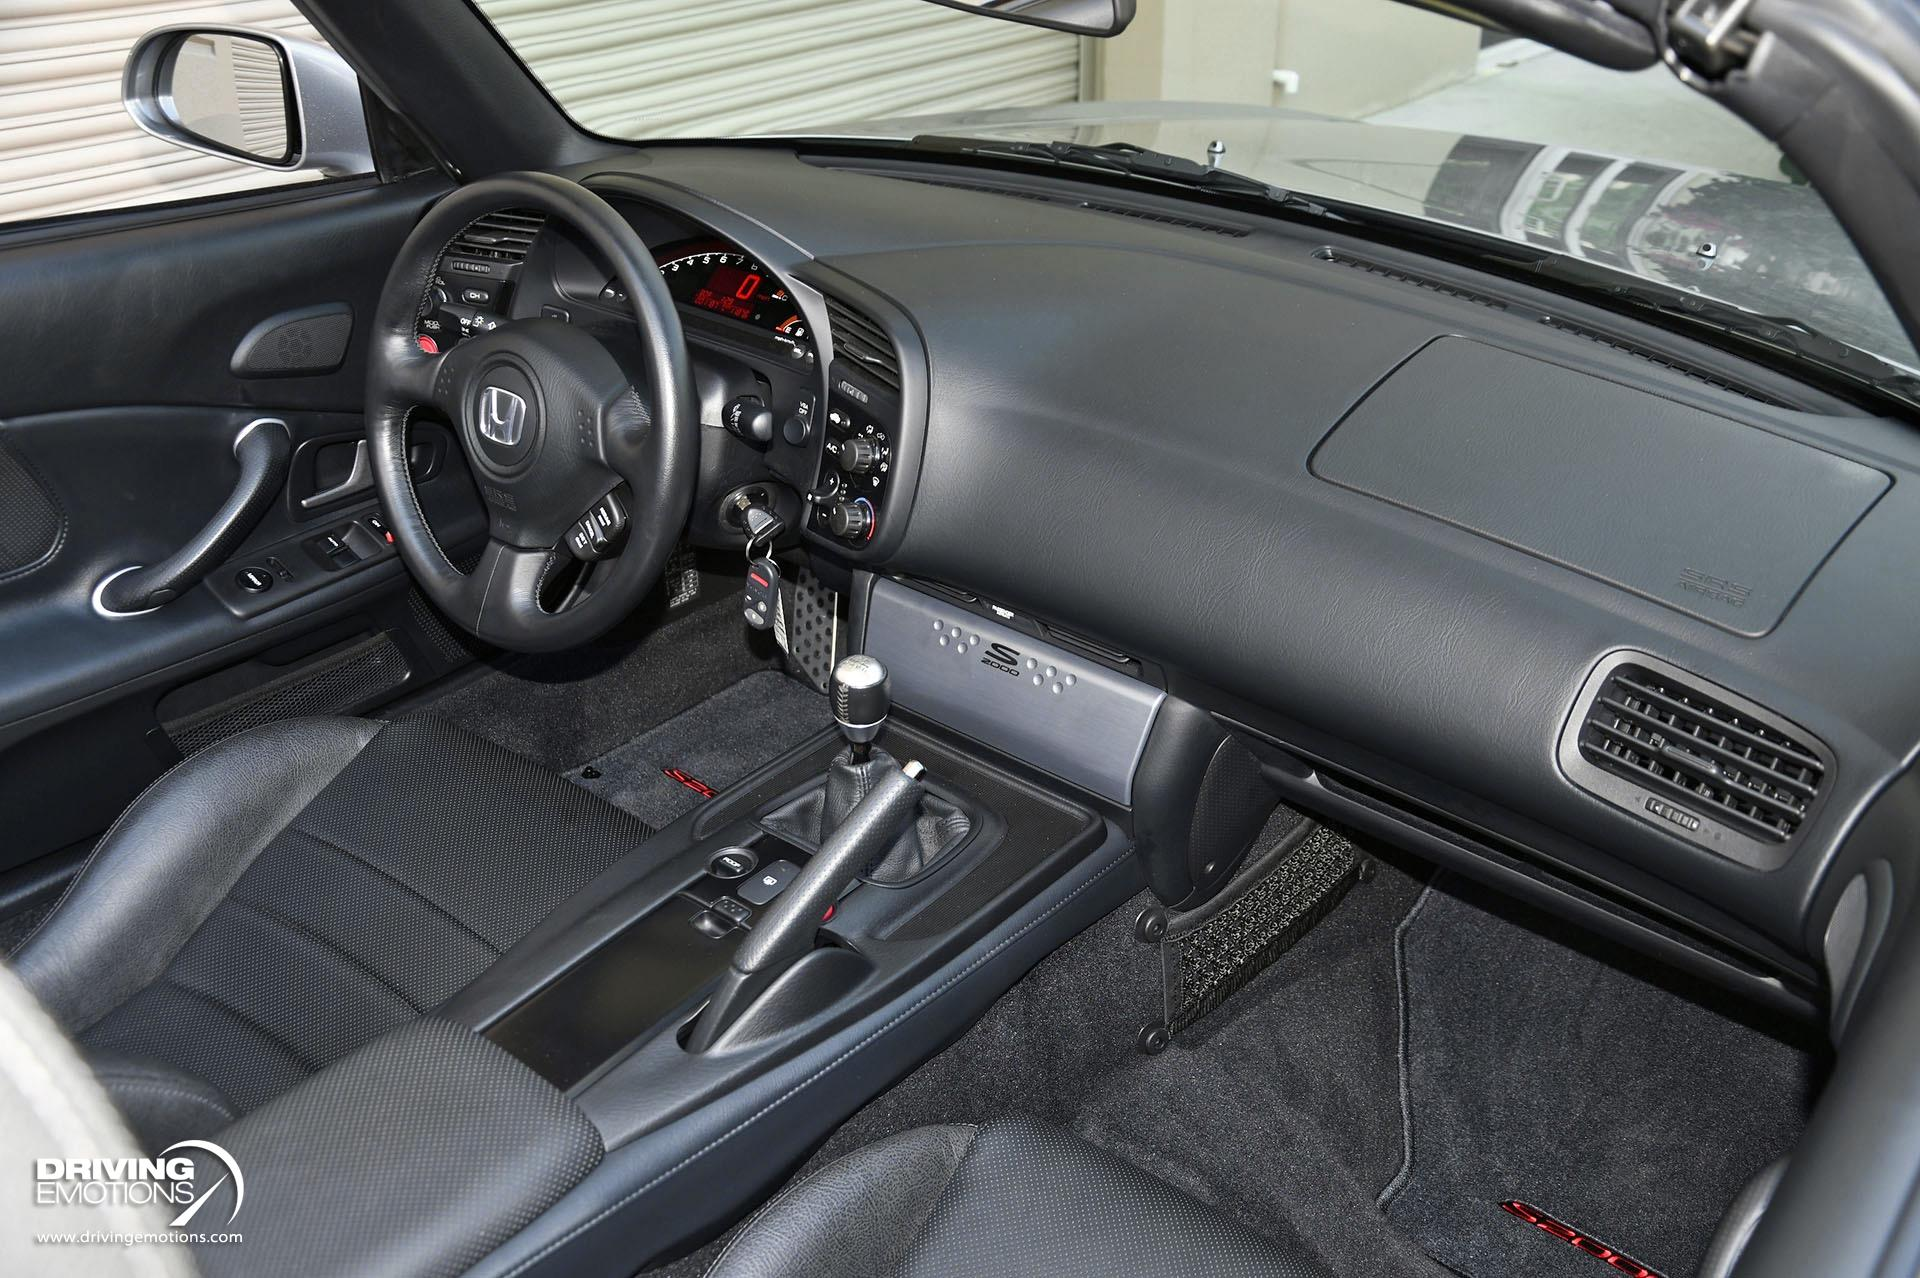 Used 2007 Honda S2000 COLLECTOR!! SUPER LOW MILES!! | Lake Park, FL